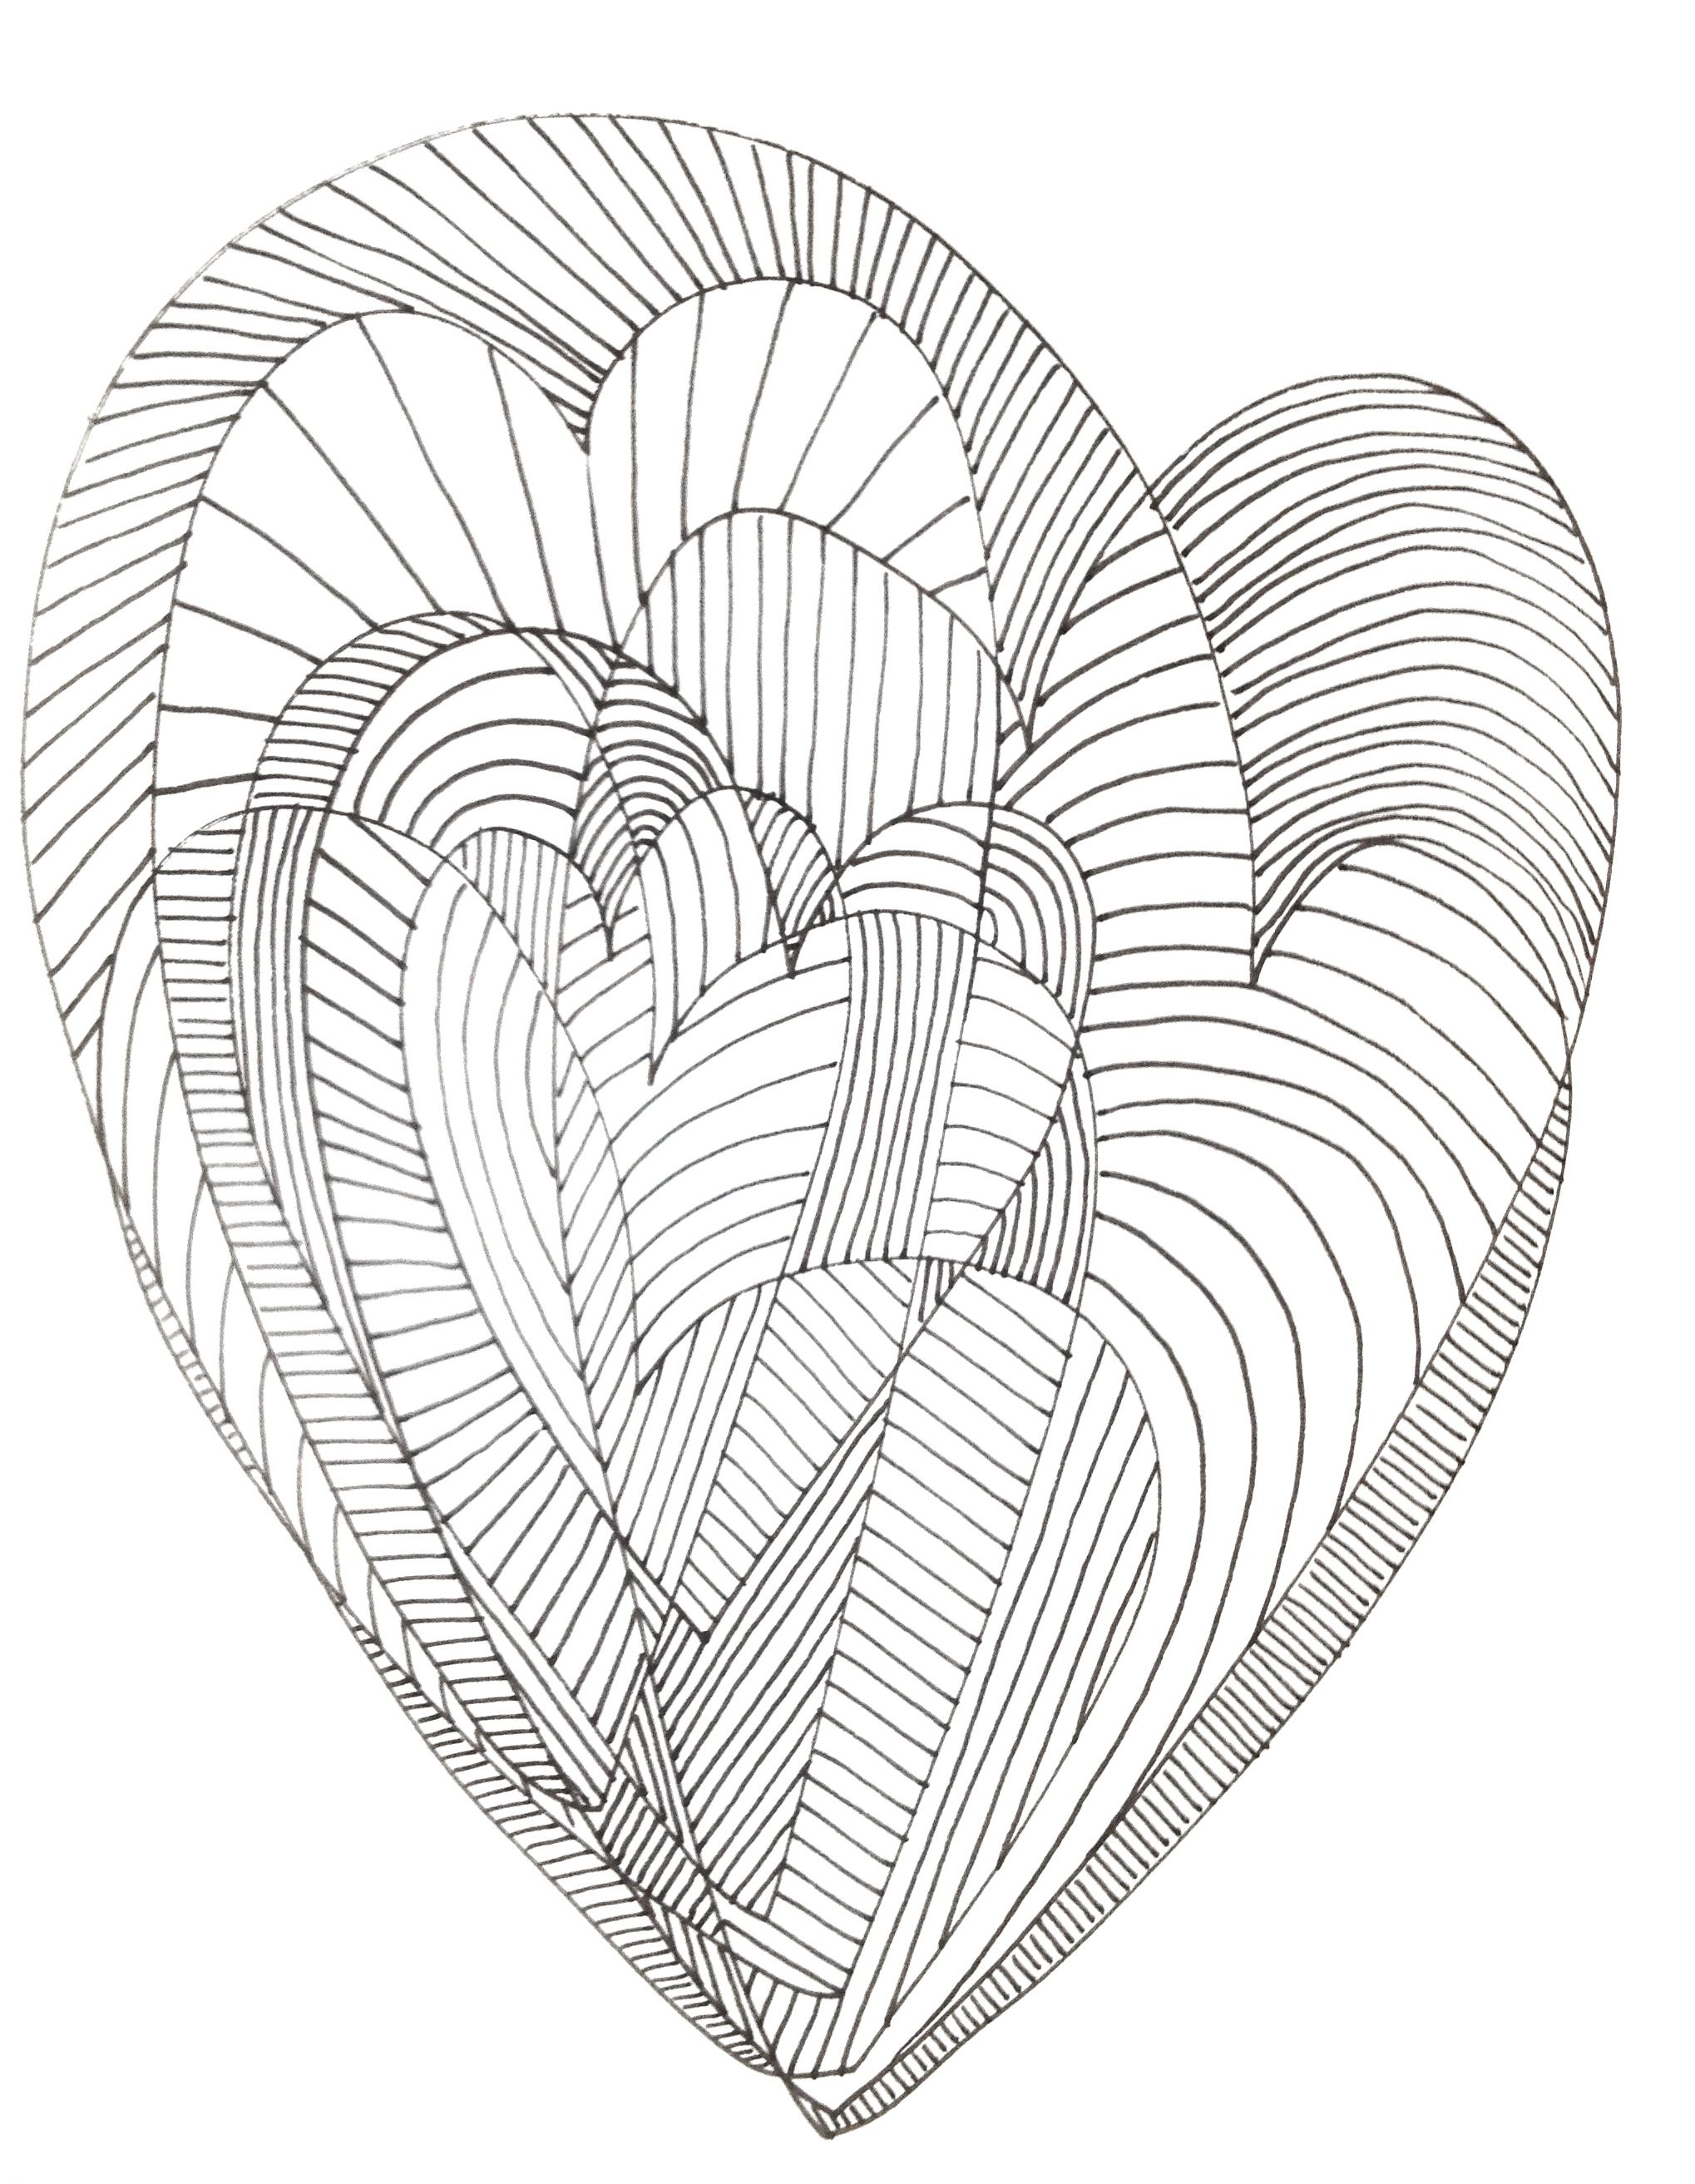 Hearts abstract doodle zentangle coloring pages colouring for Abstract heart coloring pages